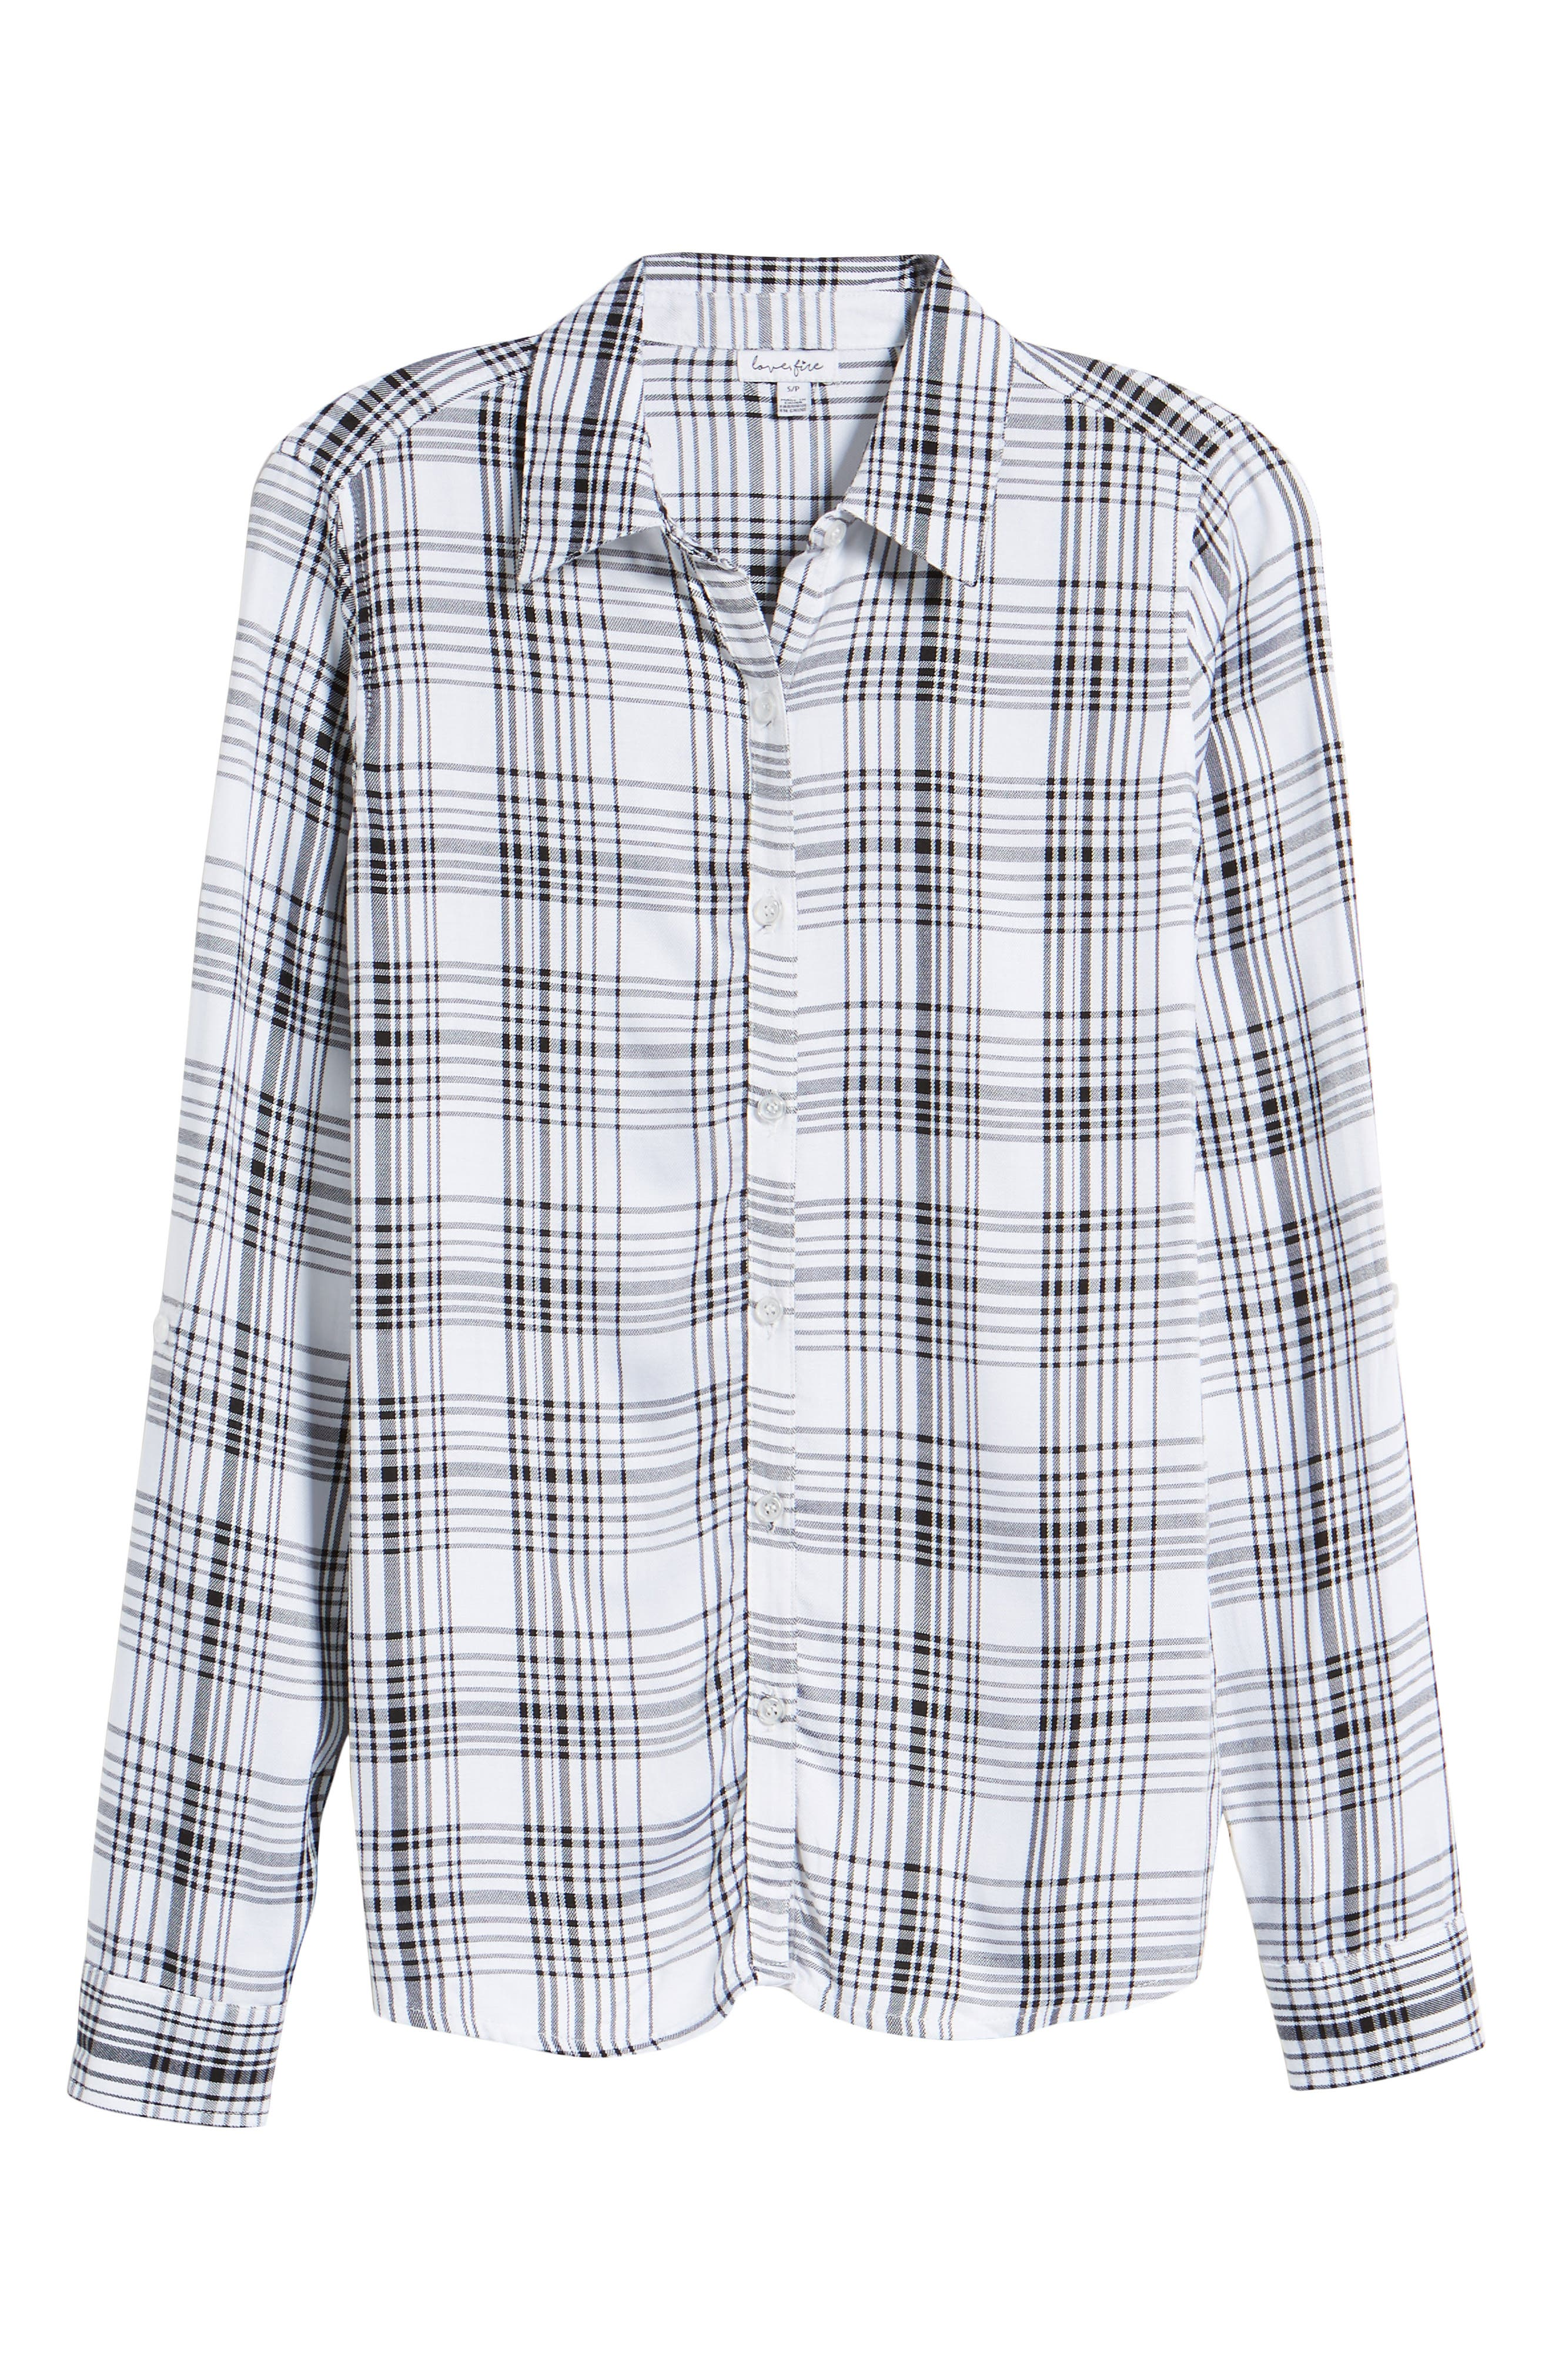 Roll-Tab Shirt,                             Alternate thumbnail 7, color,                             Black White Plaid